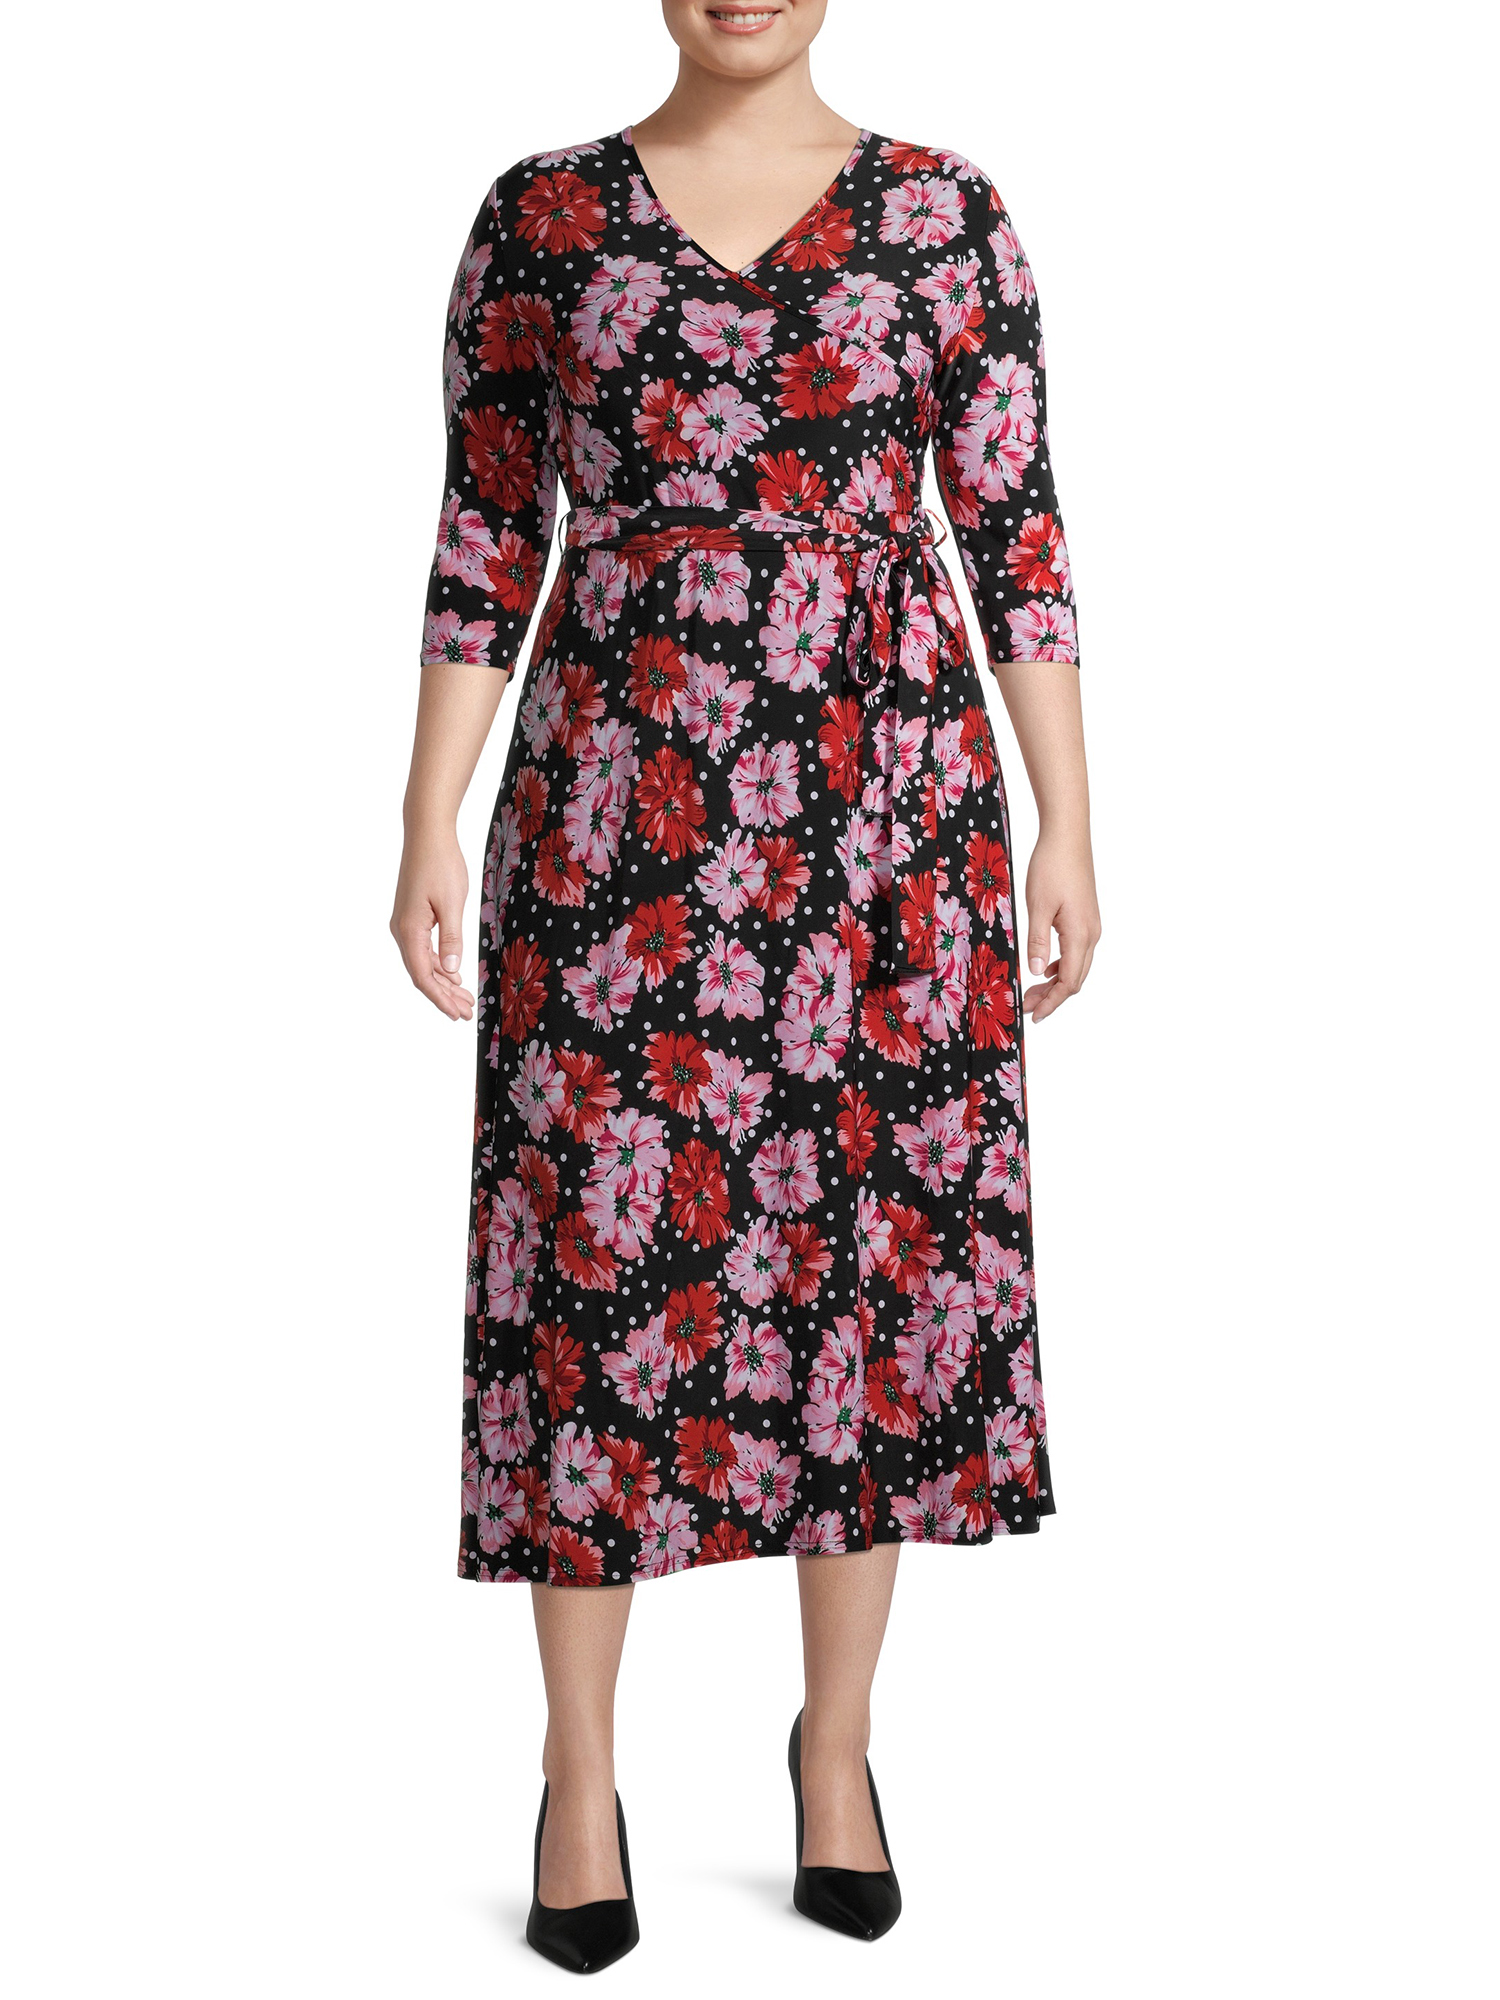 Love Sadie - Love Sadie Women's Plus Size 3/4 Sleeve Faux Wrap Midi Dress - Walmart.com